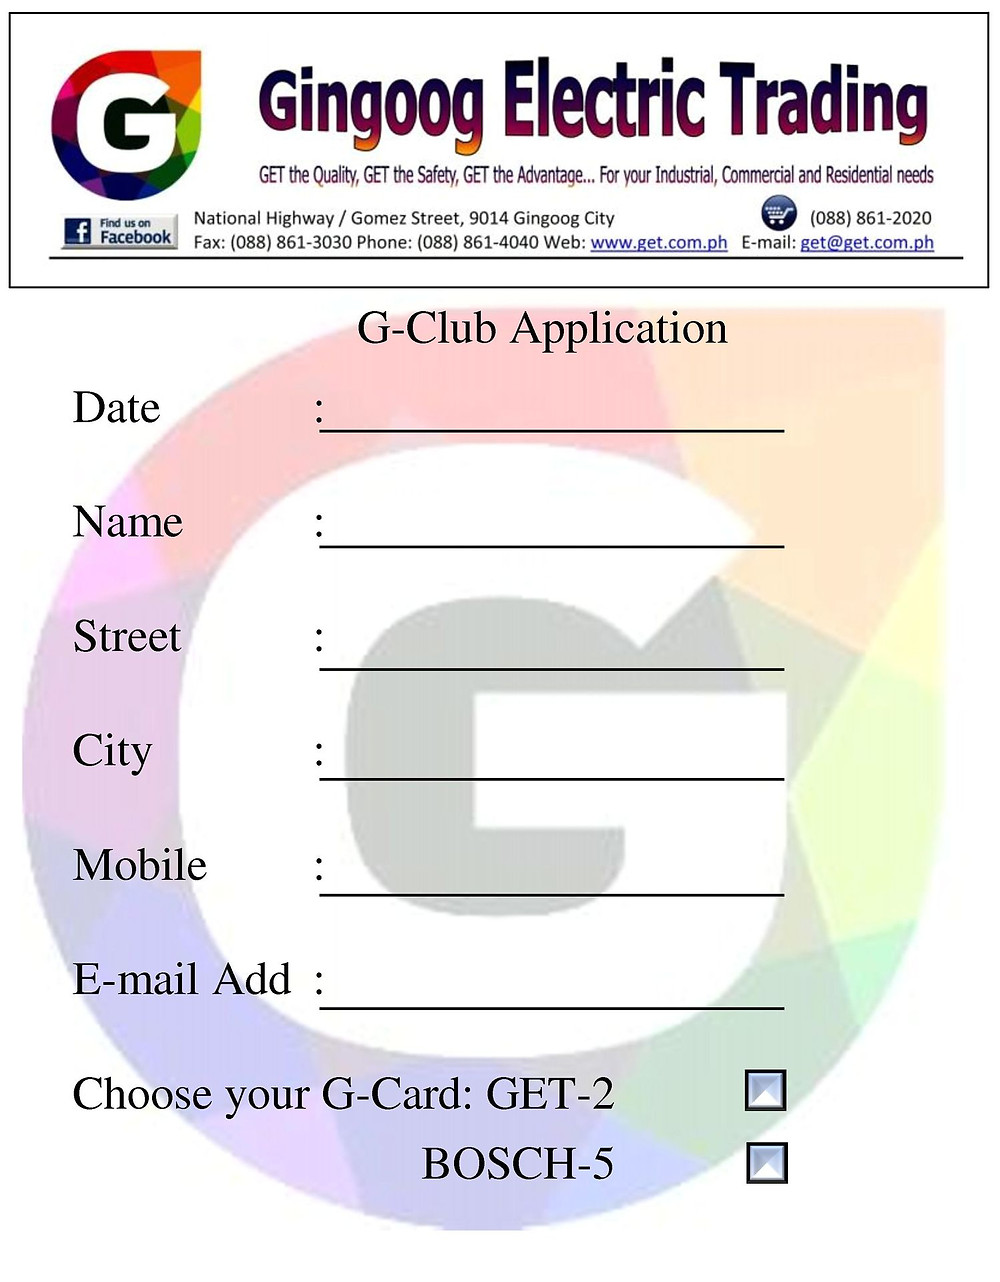 Choose your G-Card or GET them both